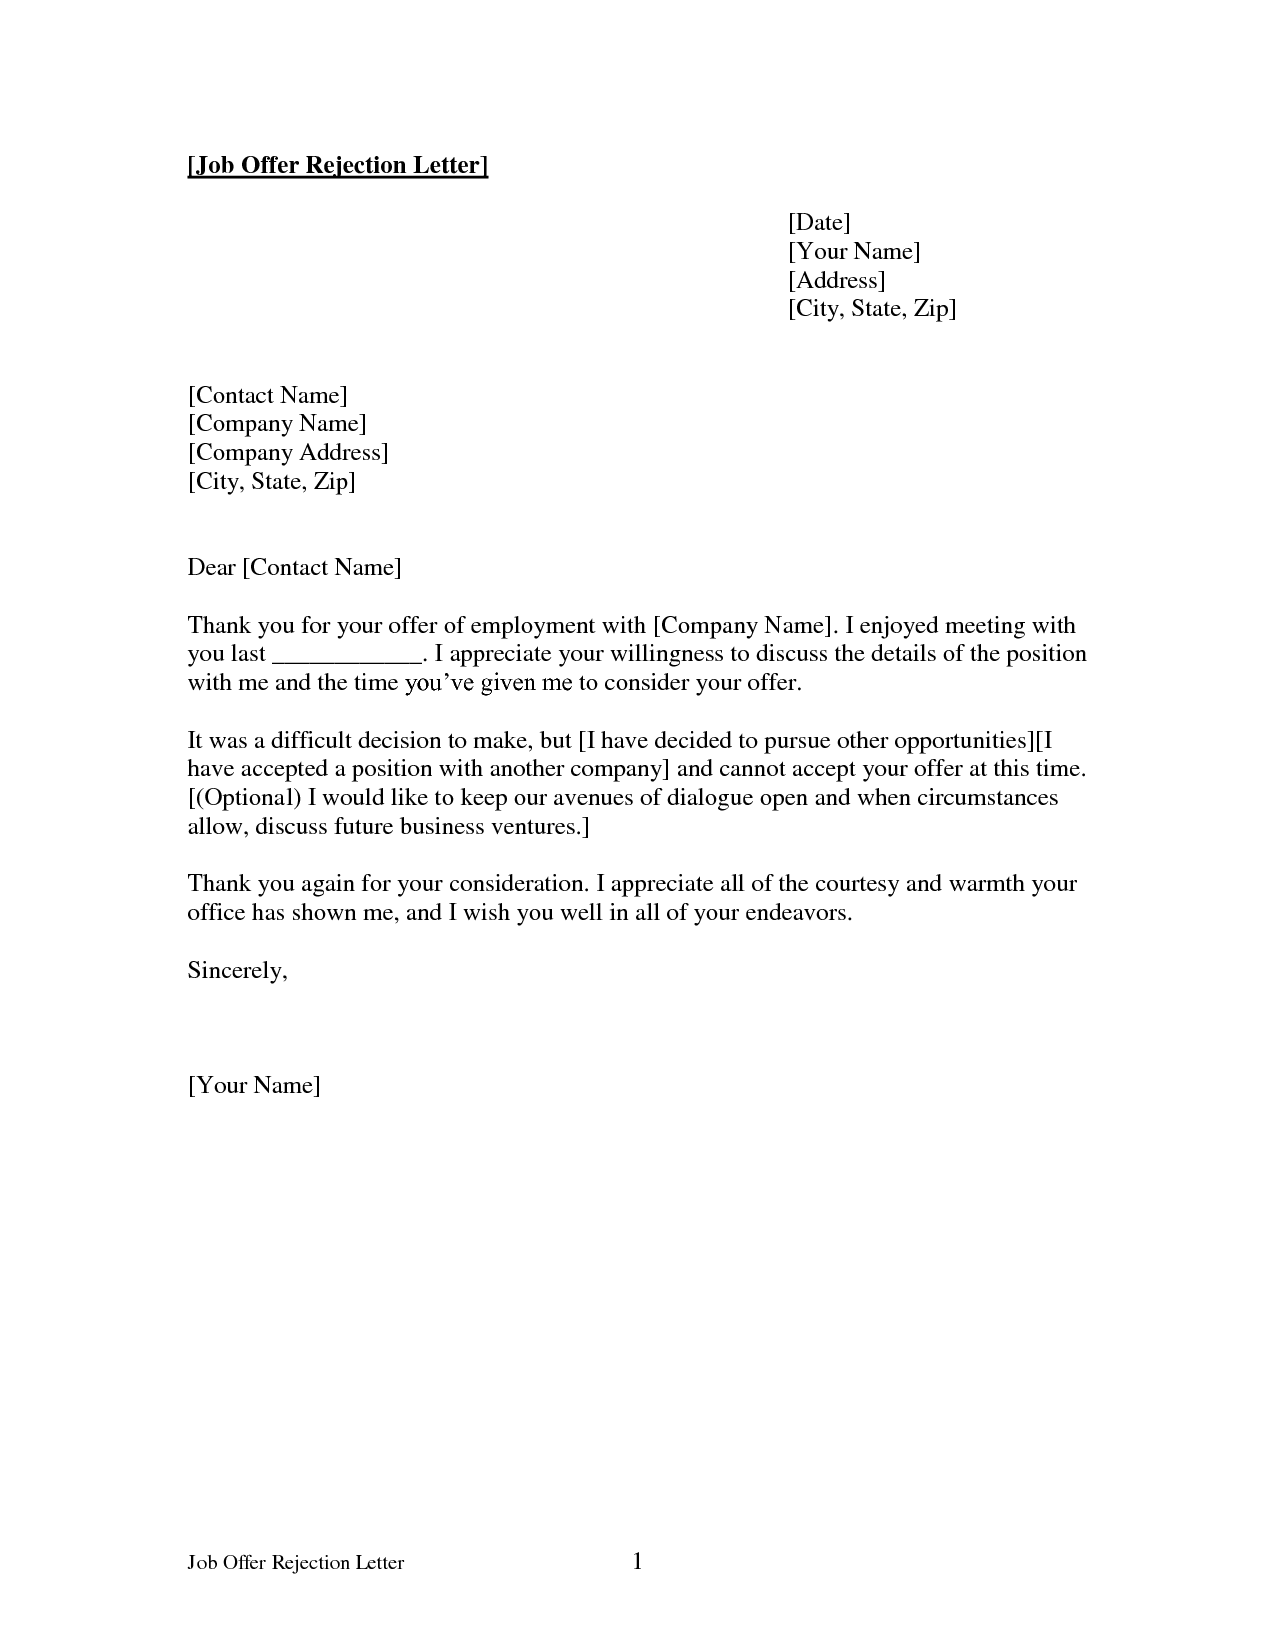 Internship Decline Letter  example of Declining Letter incase that u have been offered by two